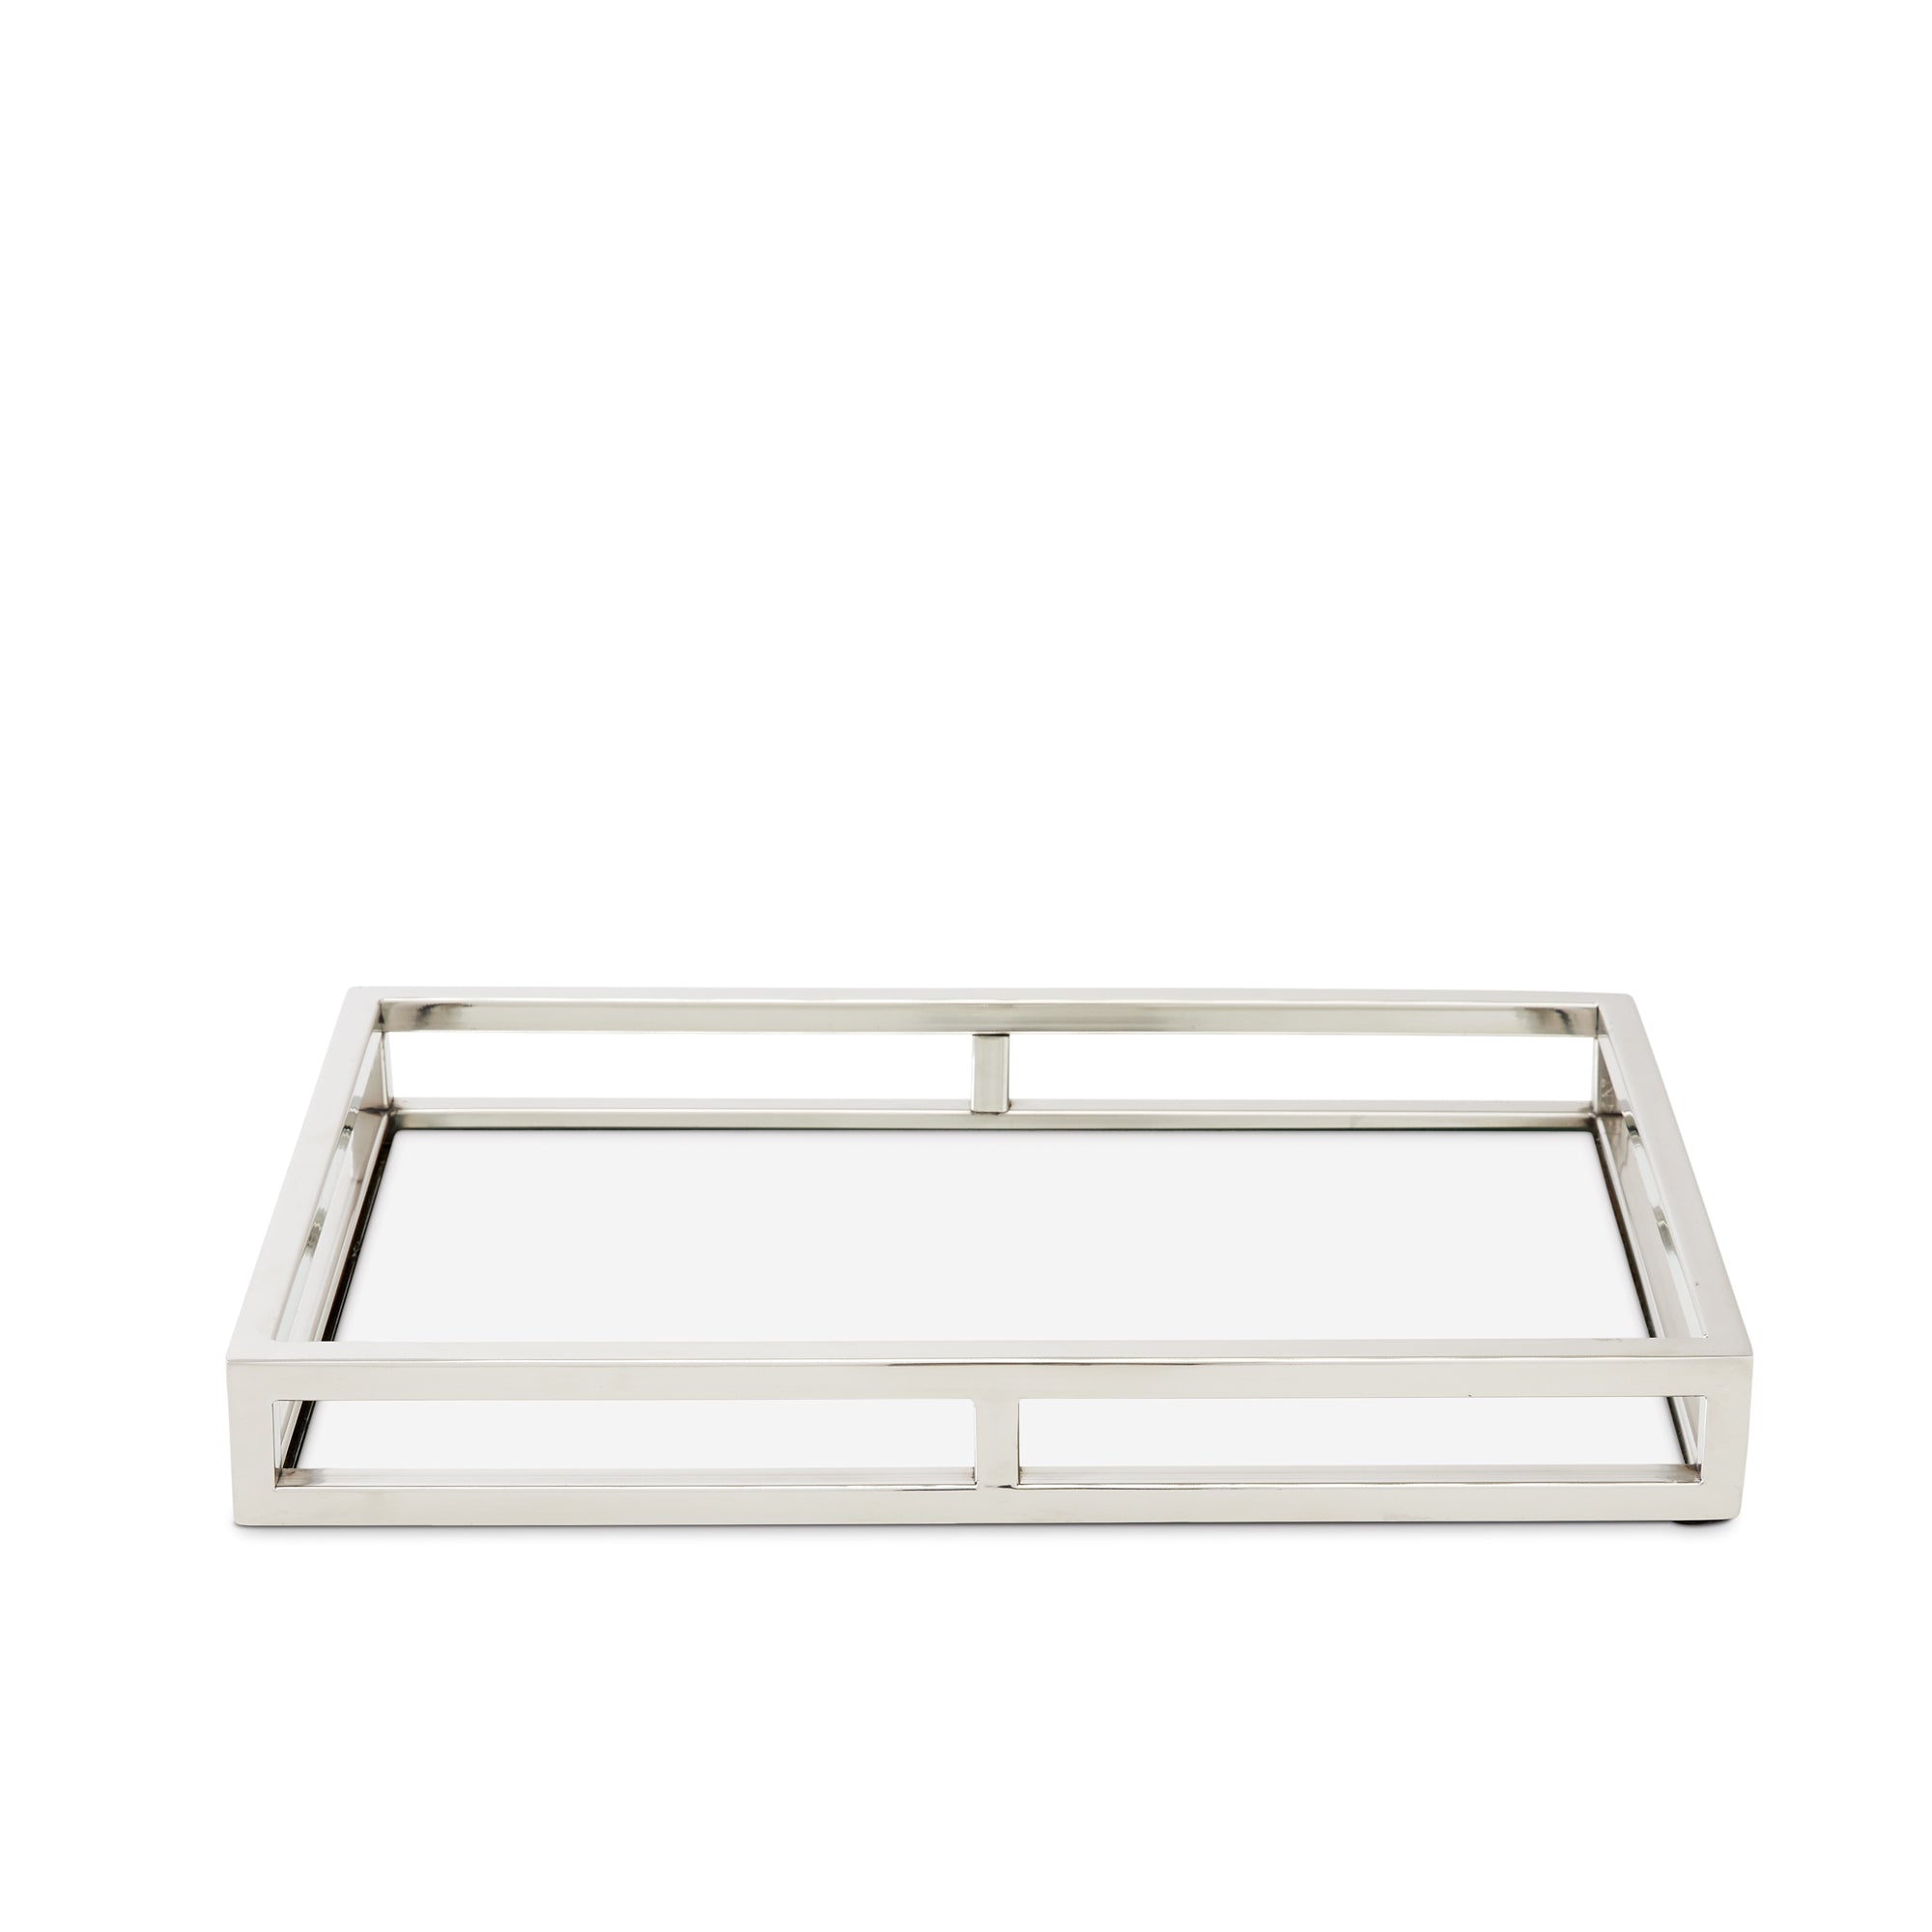 Celia rectangular mirror tray